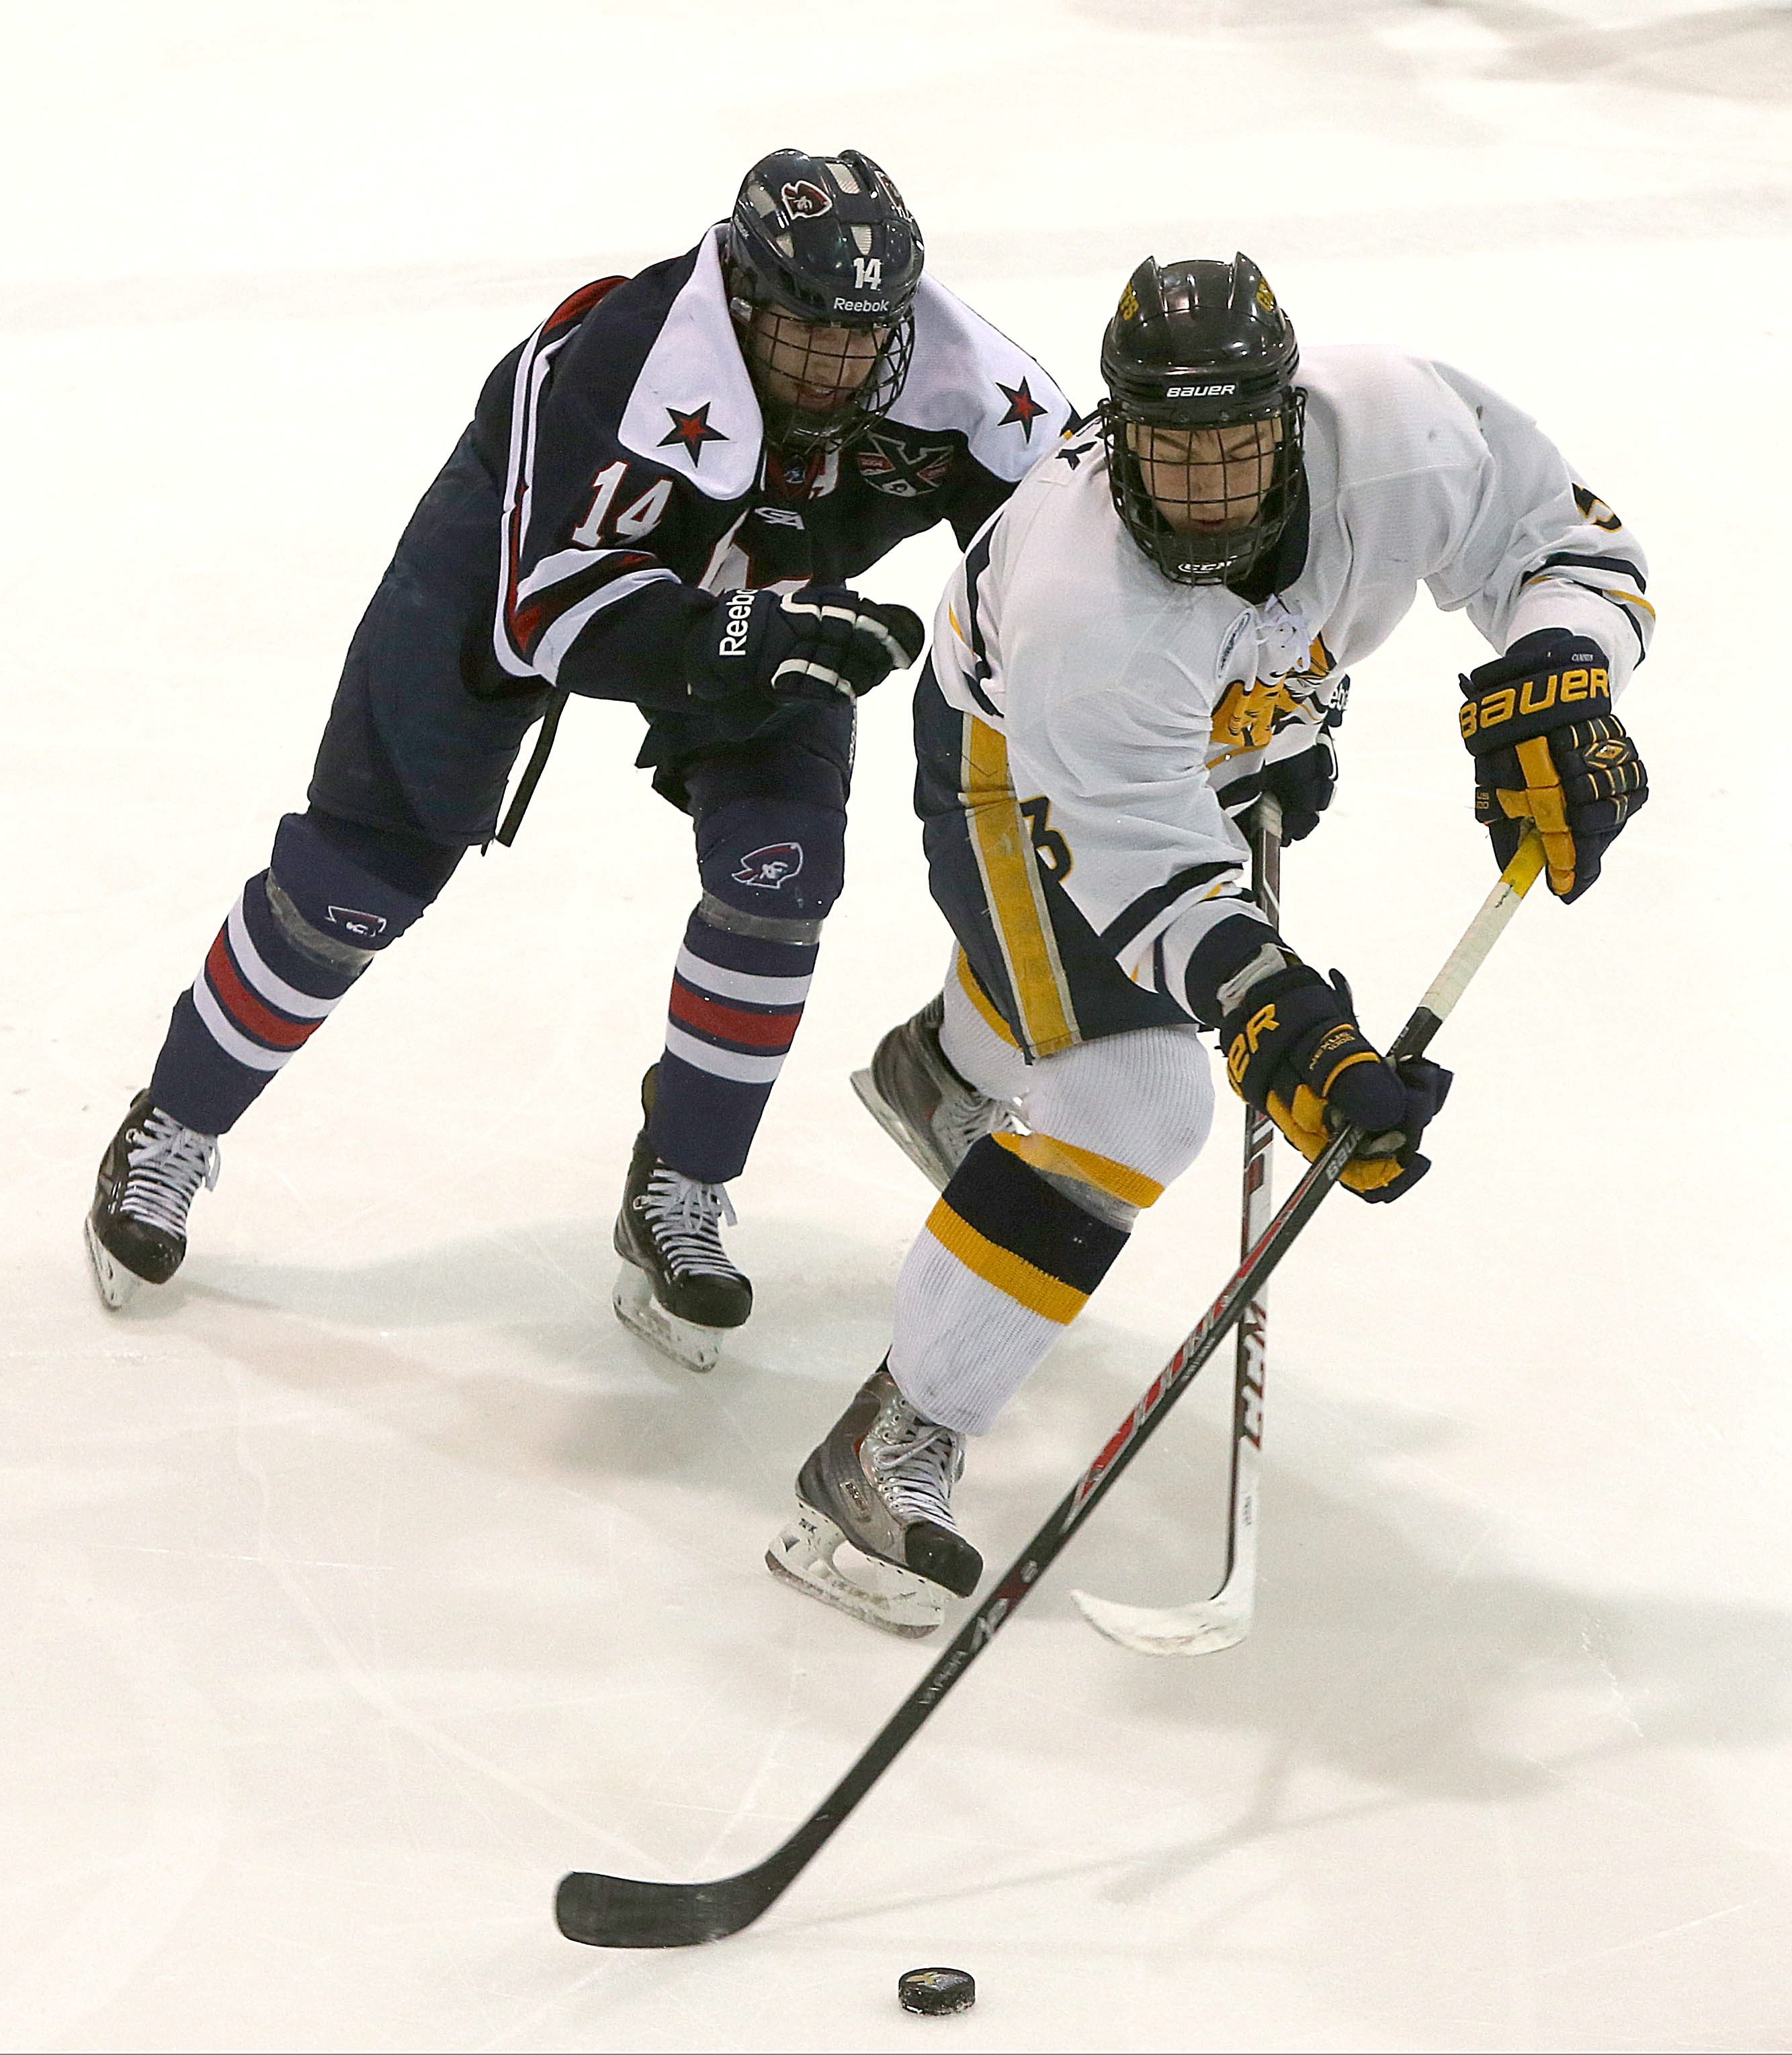 Doug Jessey of Canisius, right, and David Rigatti of Robert Morris battle in the third period.